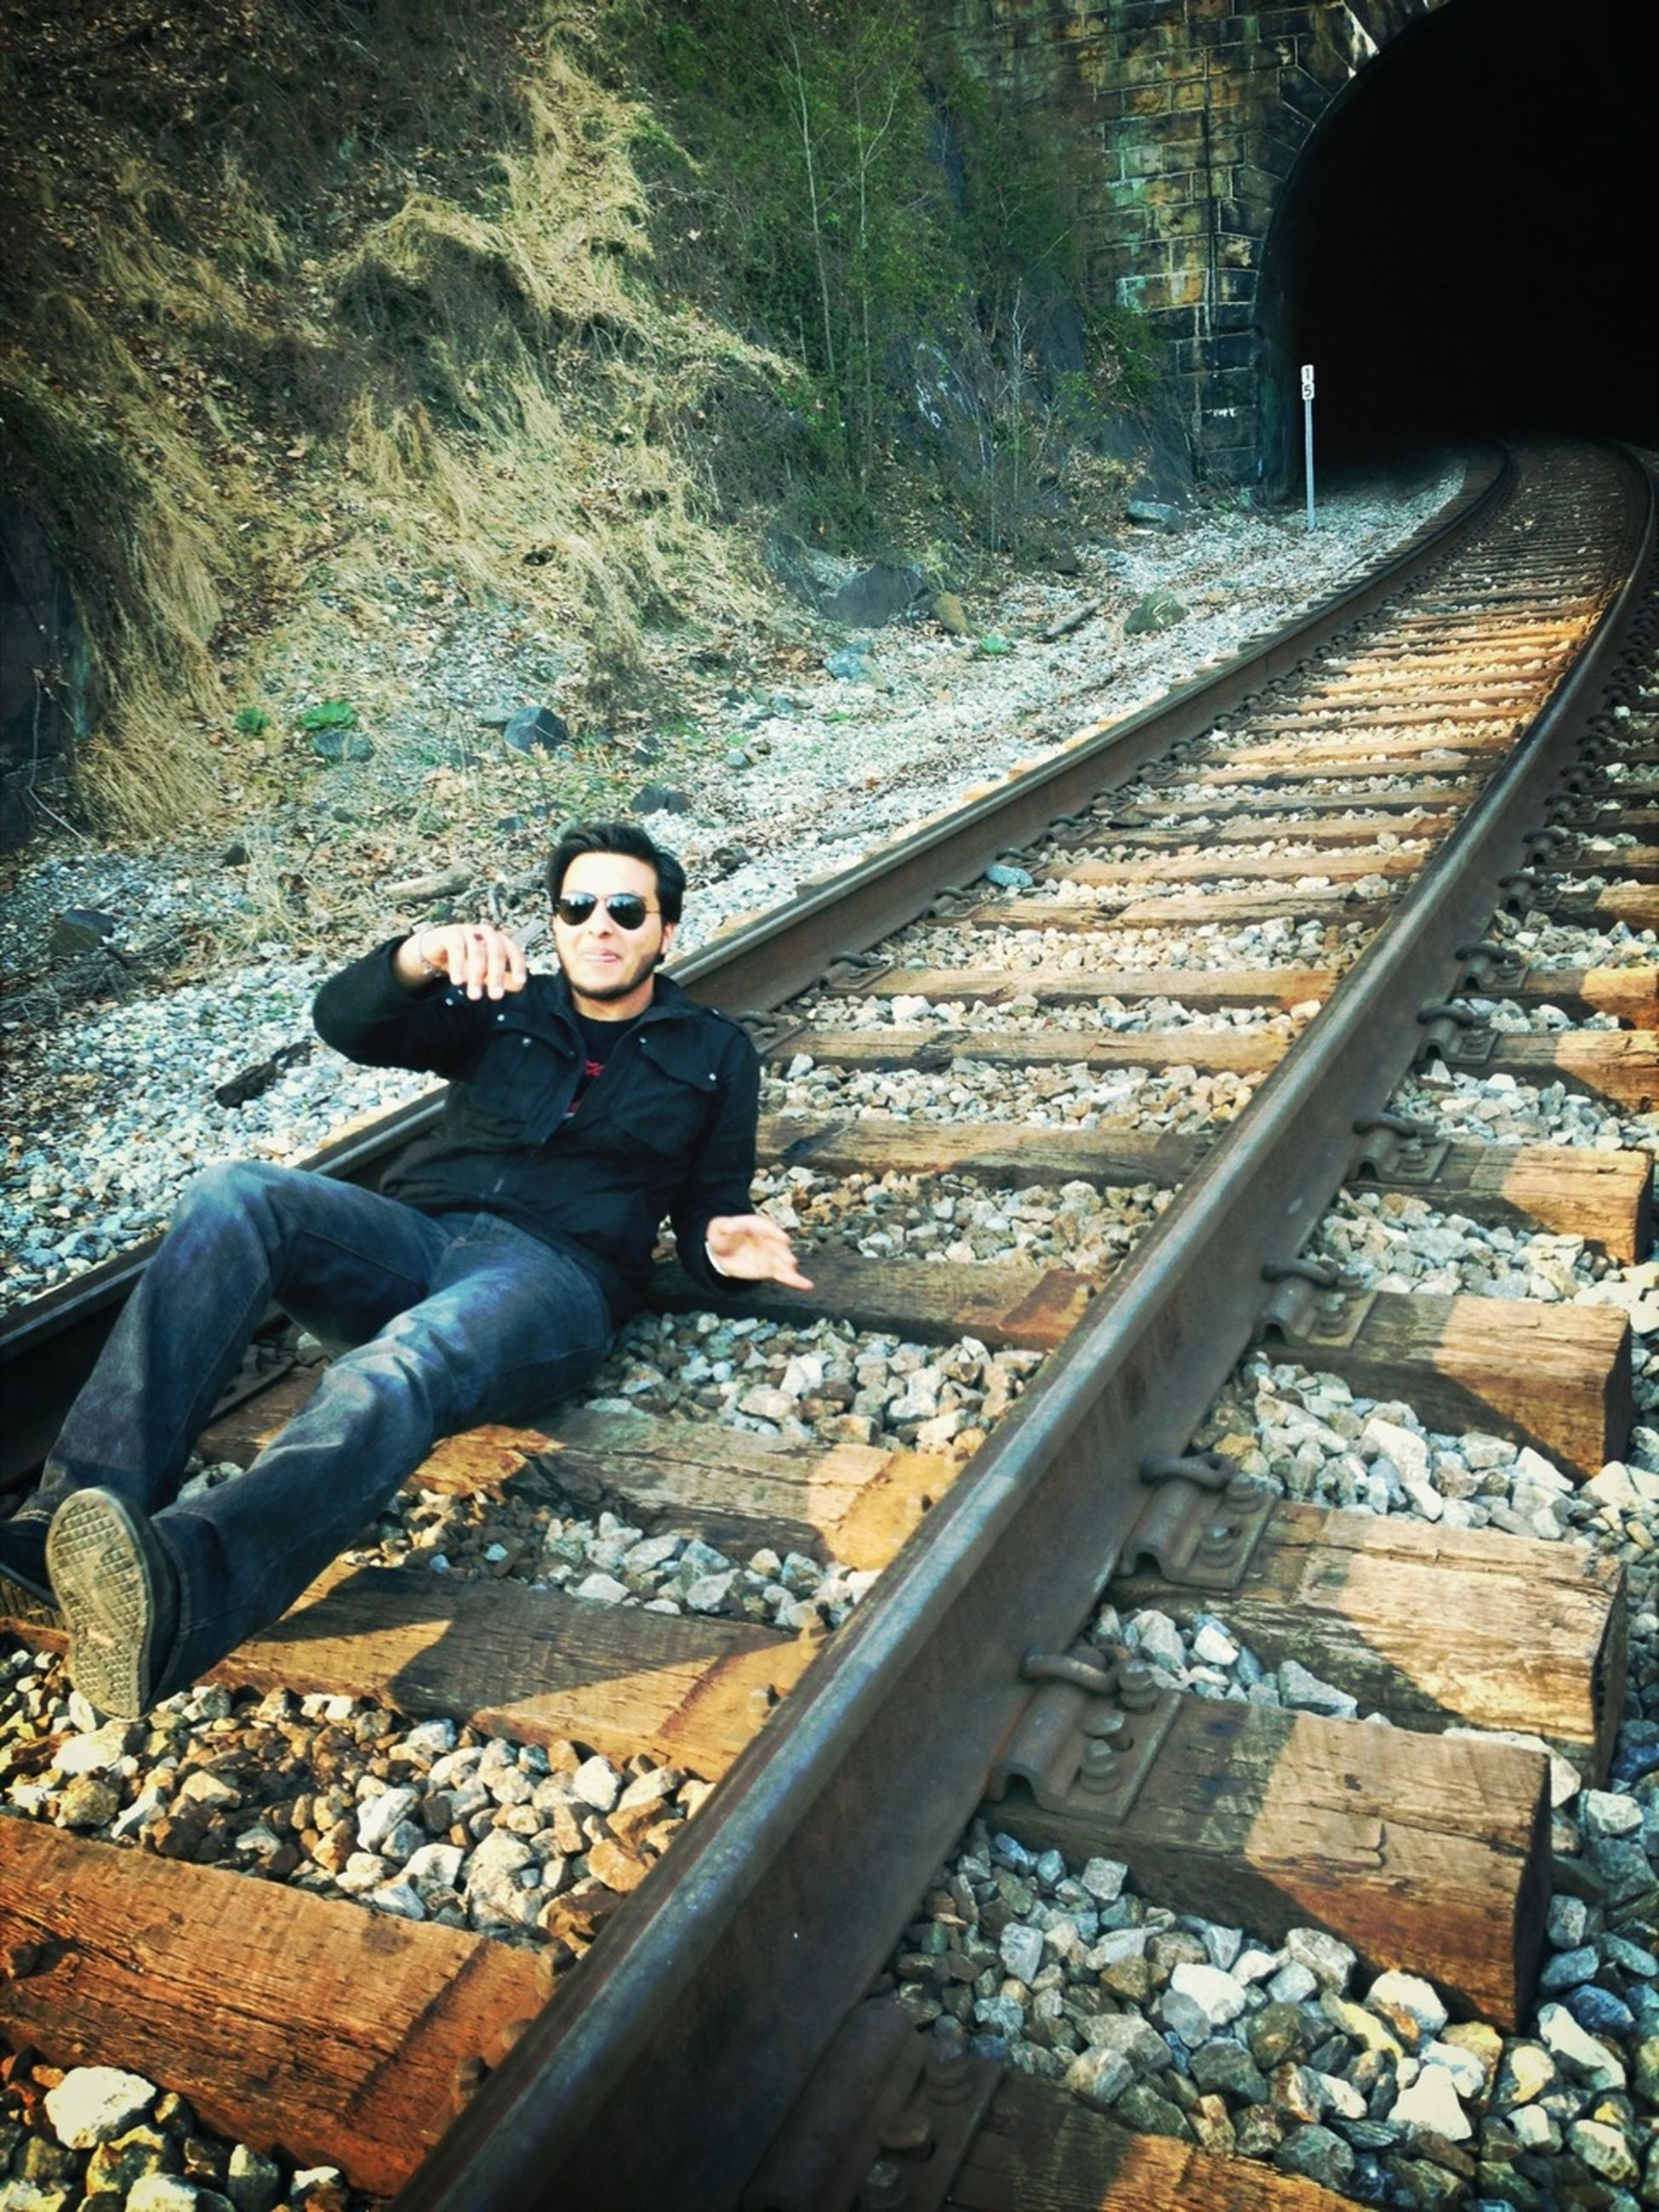 lifestyles, leisure activity, young adult, casual clothing, standing, portrait, person, full length, railroad track, looking at camera, young men, front view, rock - object, sitting, built structure, smiling, technology